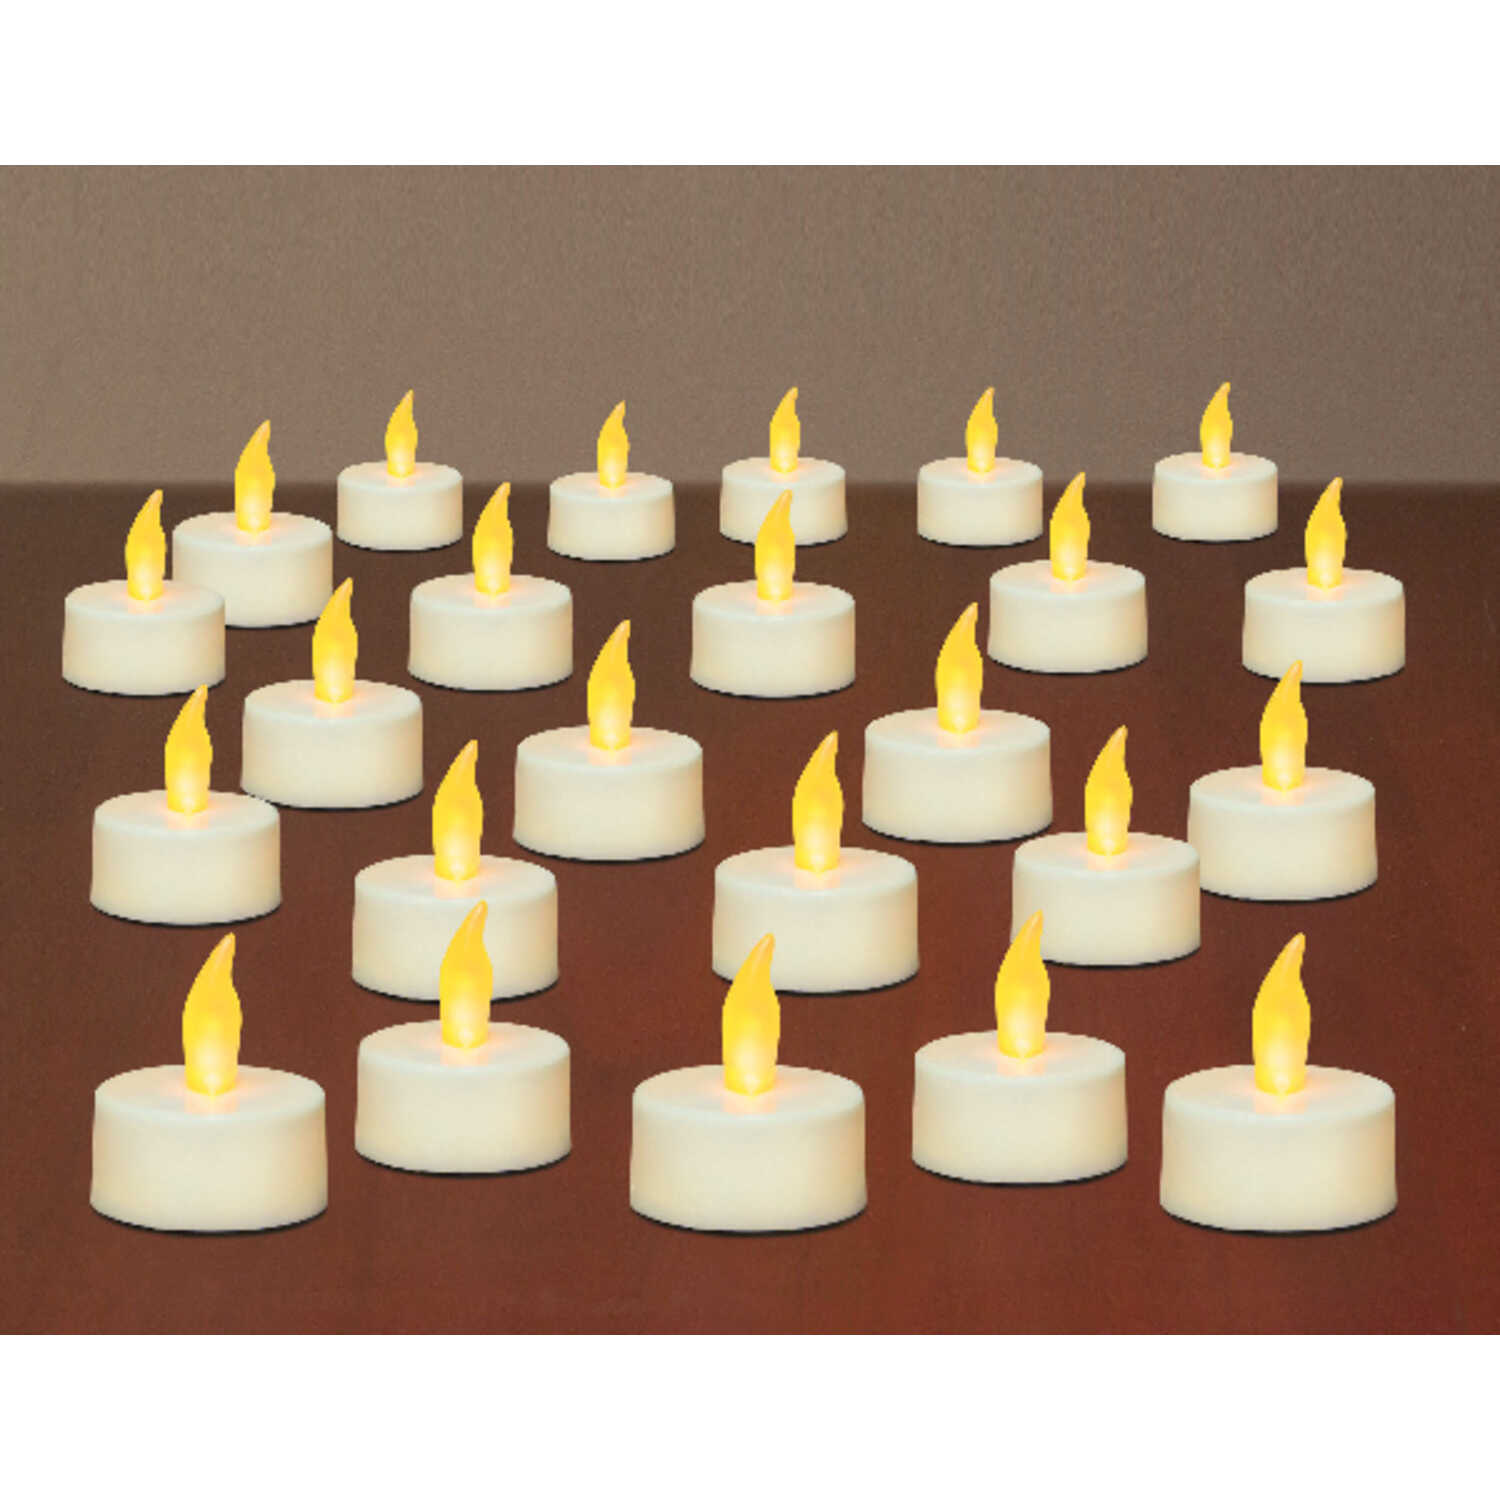 Inglow  White  Tealight  Candle  3.25 in. H